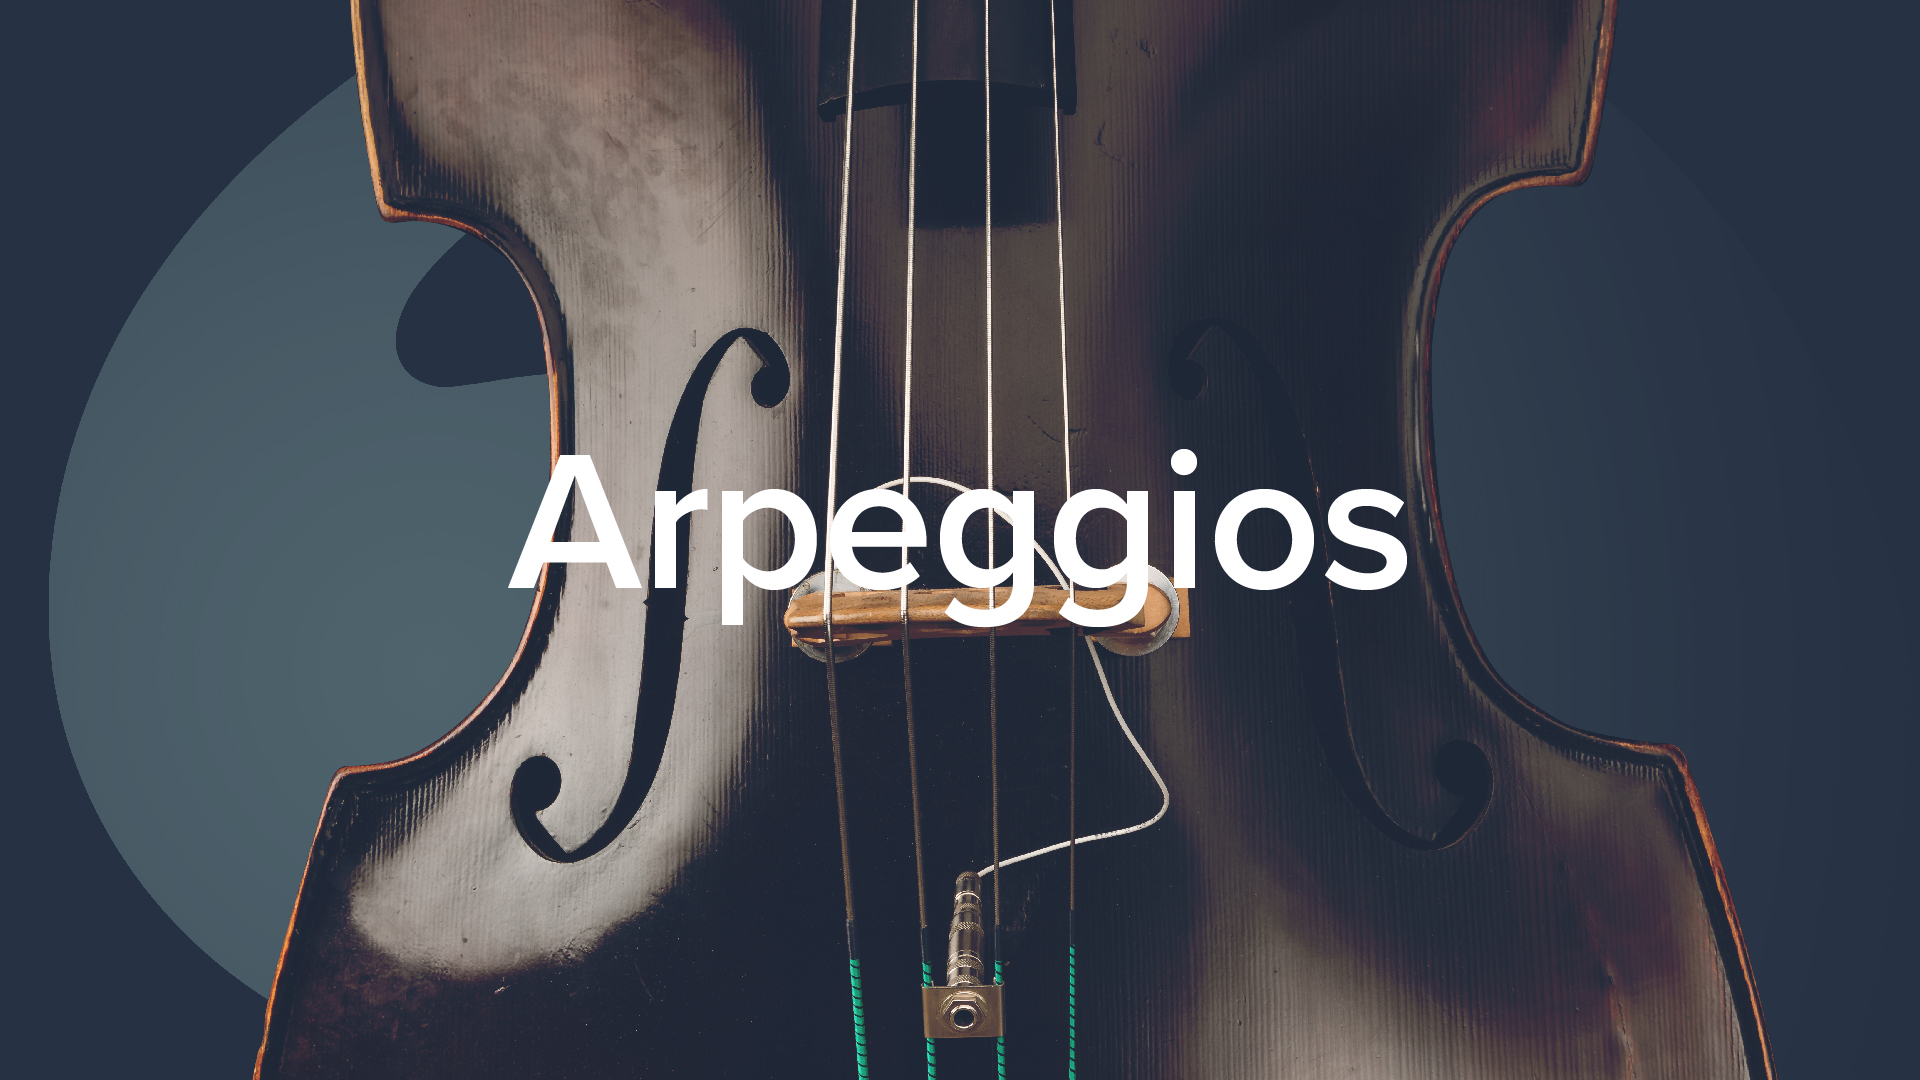 'Double Bass Arpeggios' by Geoff Chalmers.